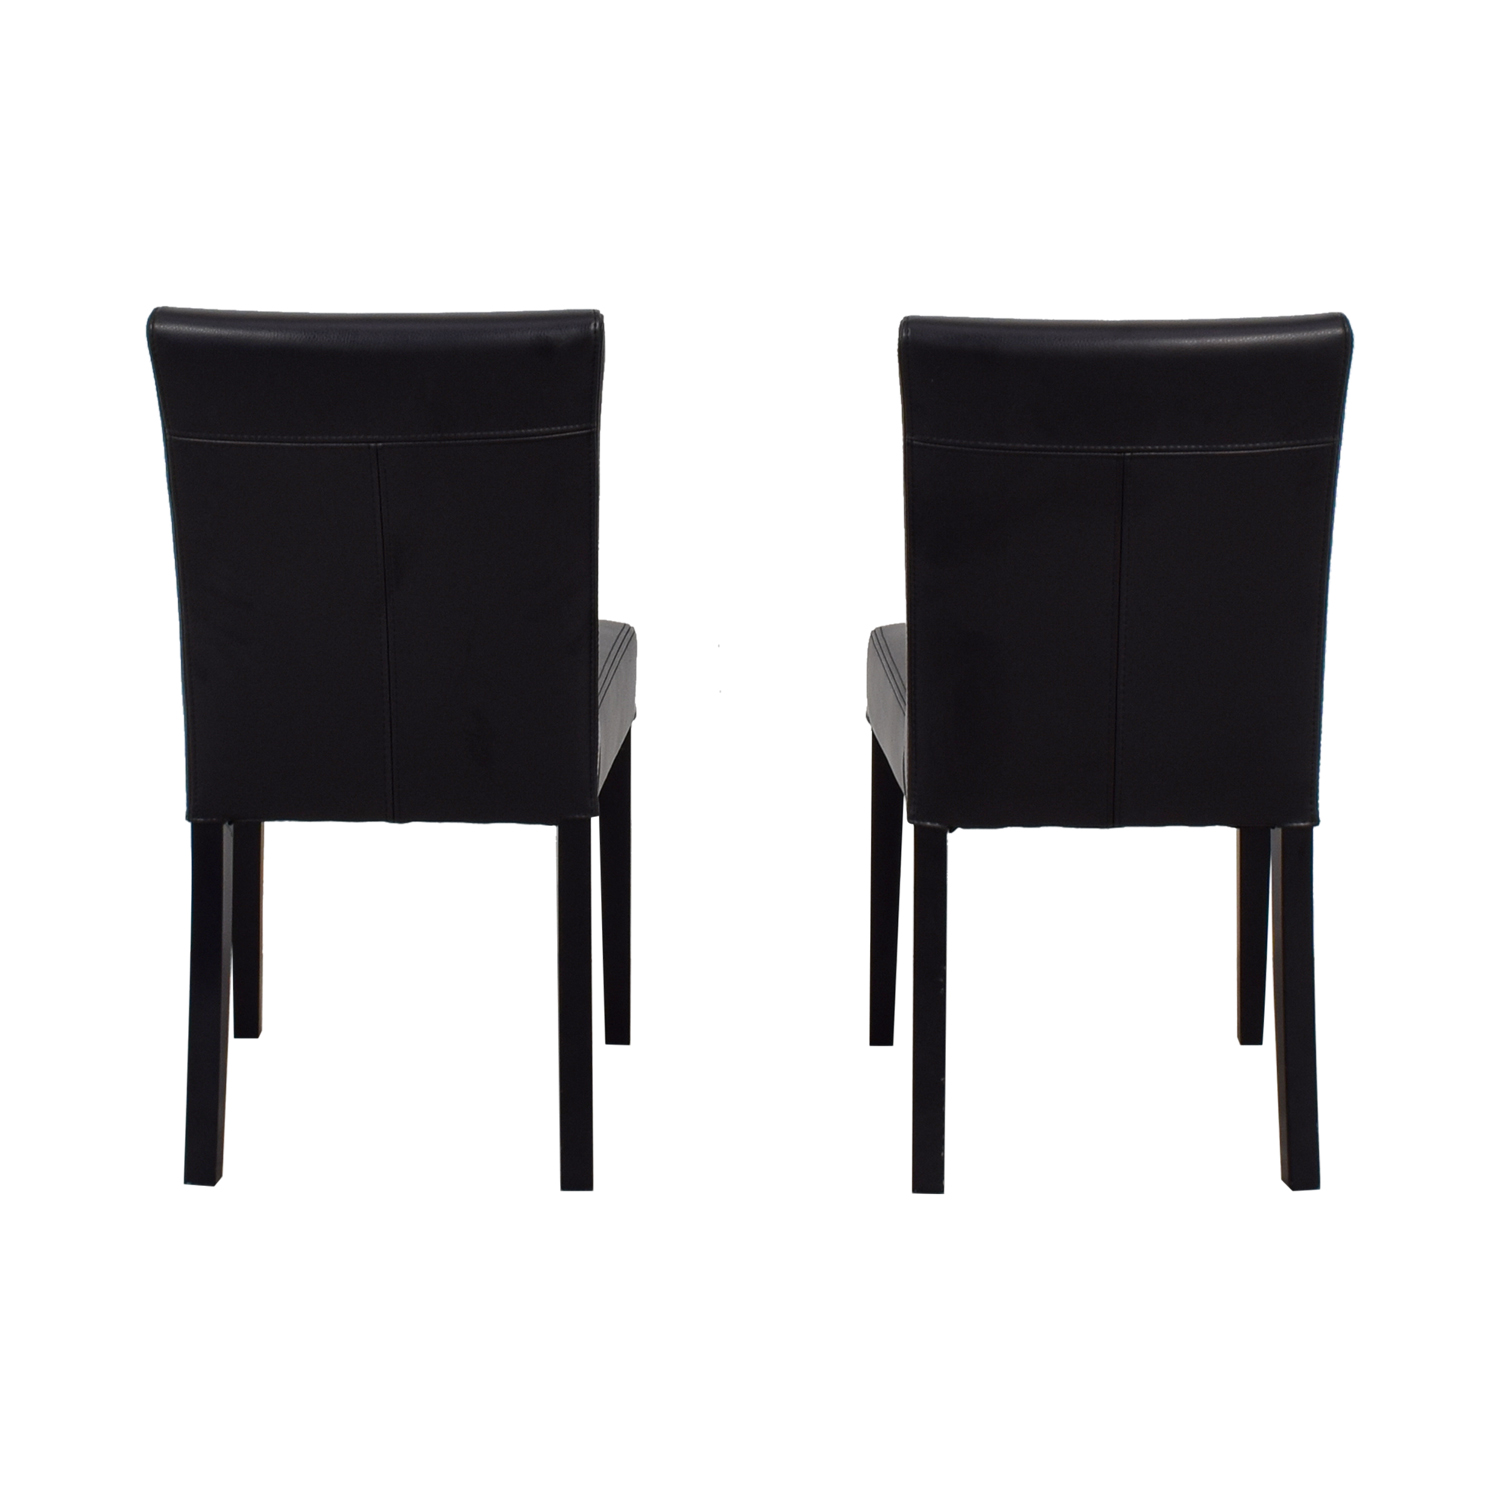 Crate & Barrel Crate & Barrel Lowe Onyx Black Leather Chairs dimensions